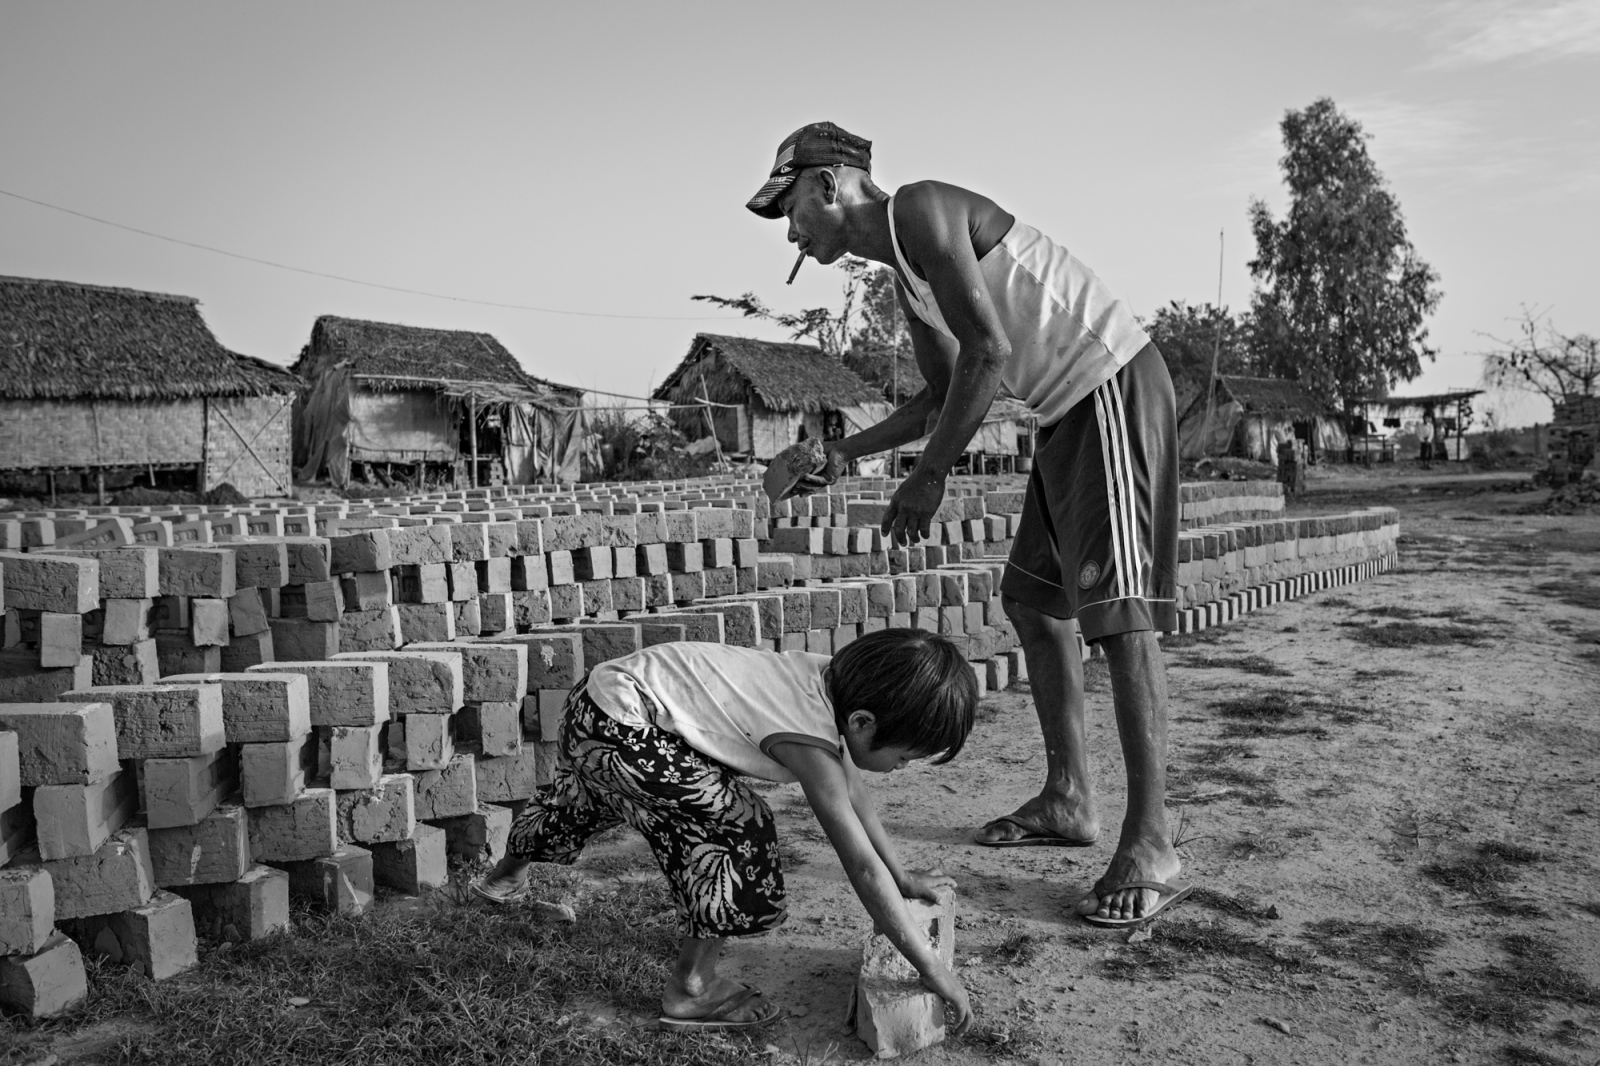 Naing Lin and Saung Ning Wai stack bricks to dry in the sun. Naing Lin often became angry at Saung Ning Wai for reasons that were not readily apparent. Moments of closeness, or times when they worked as a pair, were rare.